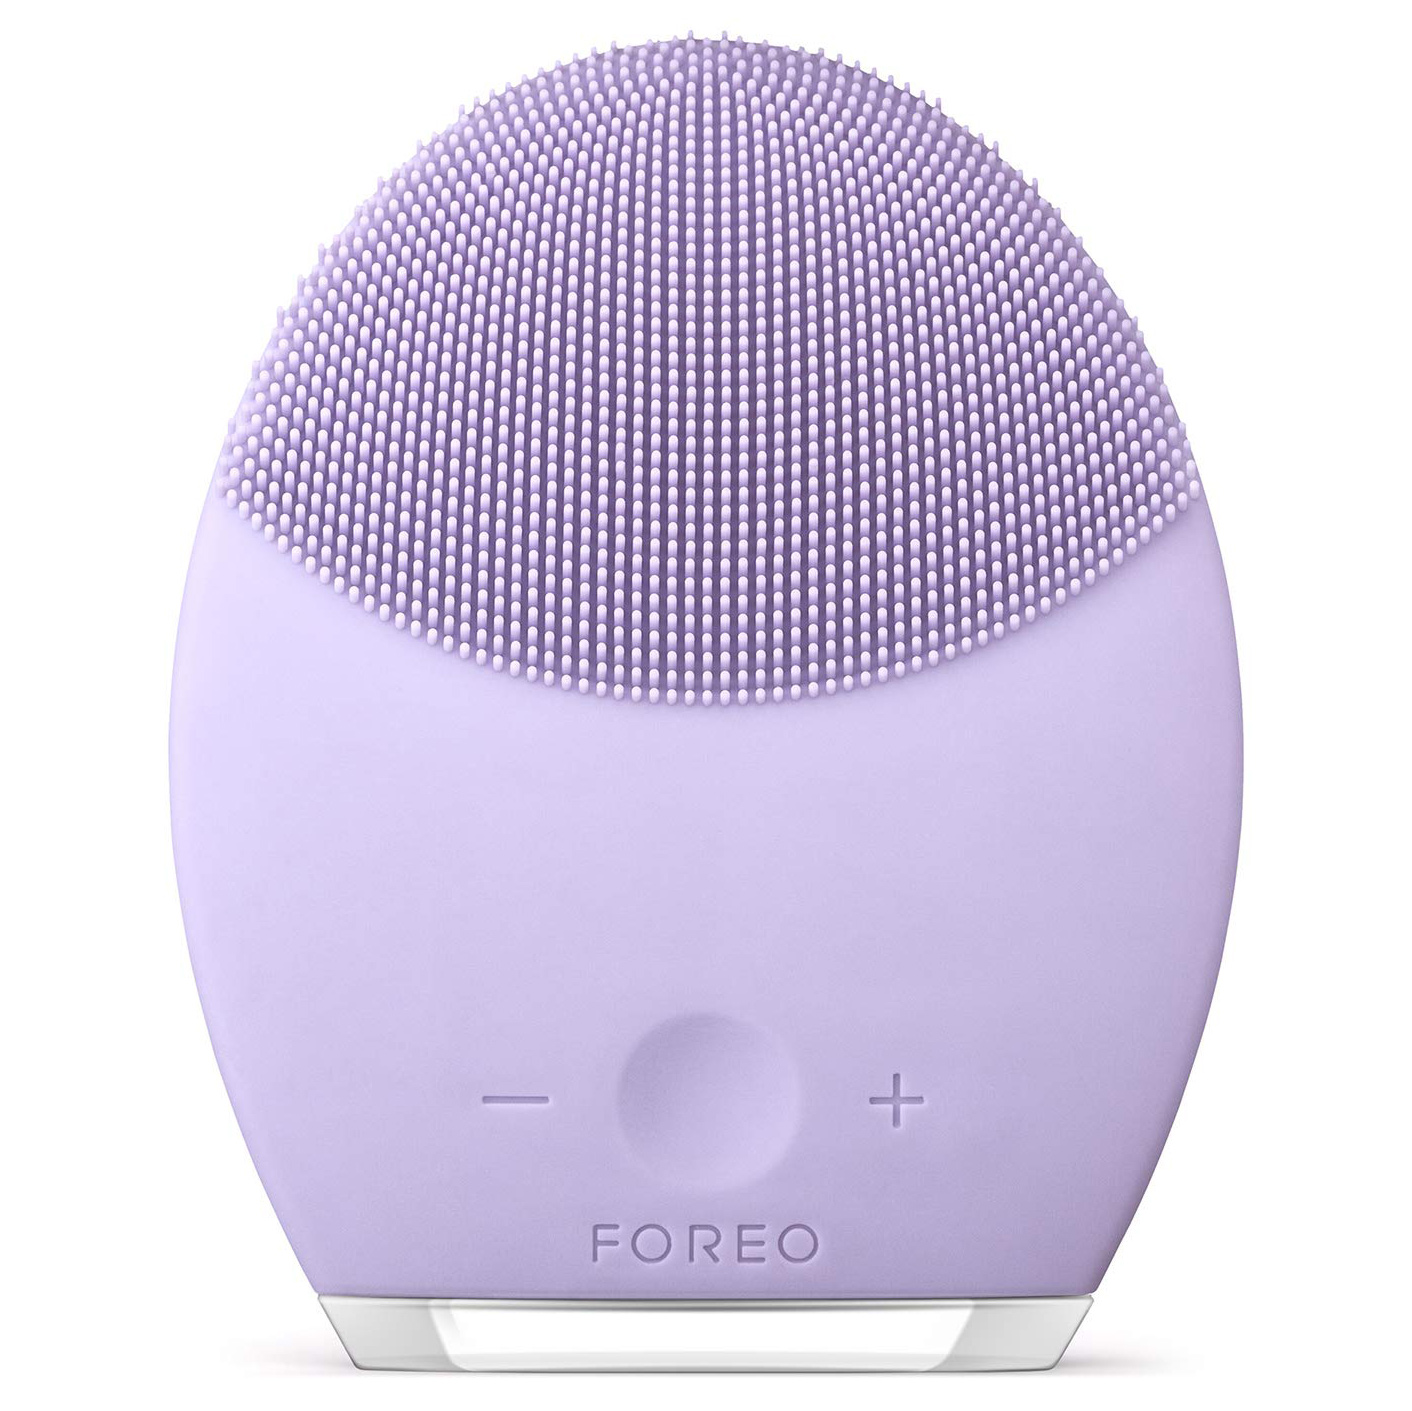 Foreo On Sale for Prime Day 2019